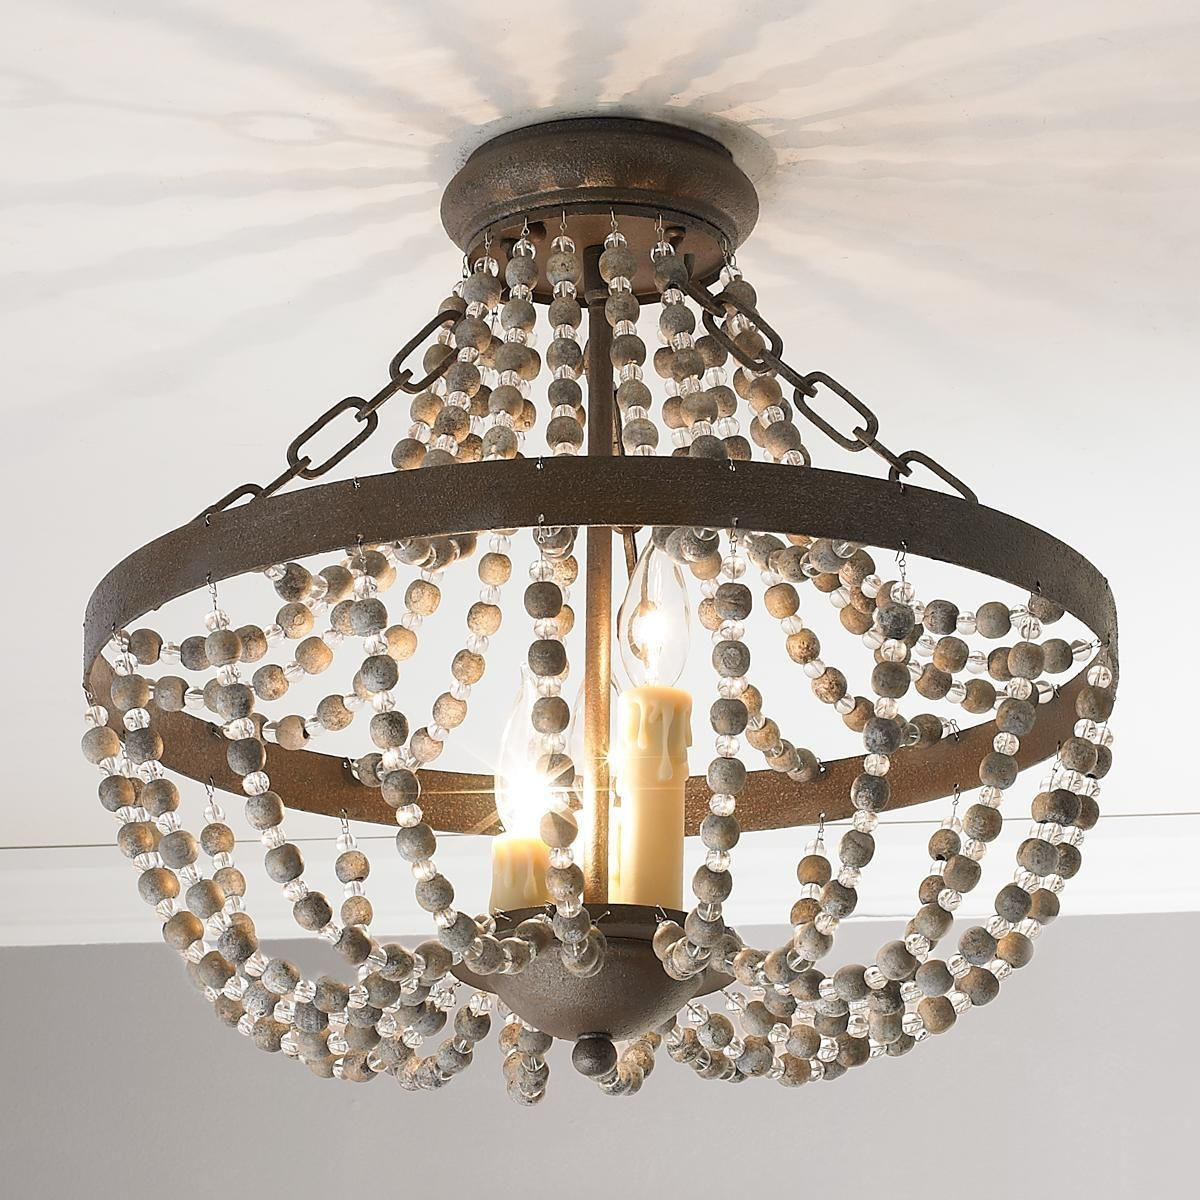 rustic overhead lighting. Rustic French Country Ceiling Light - Shades Of Overhead Lighting E